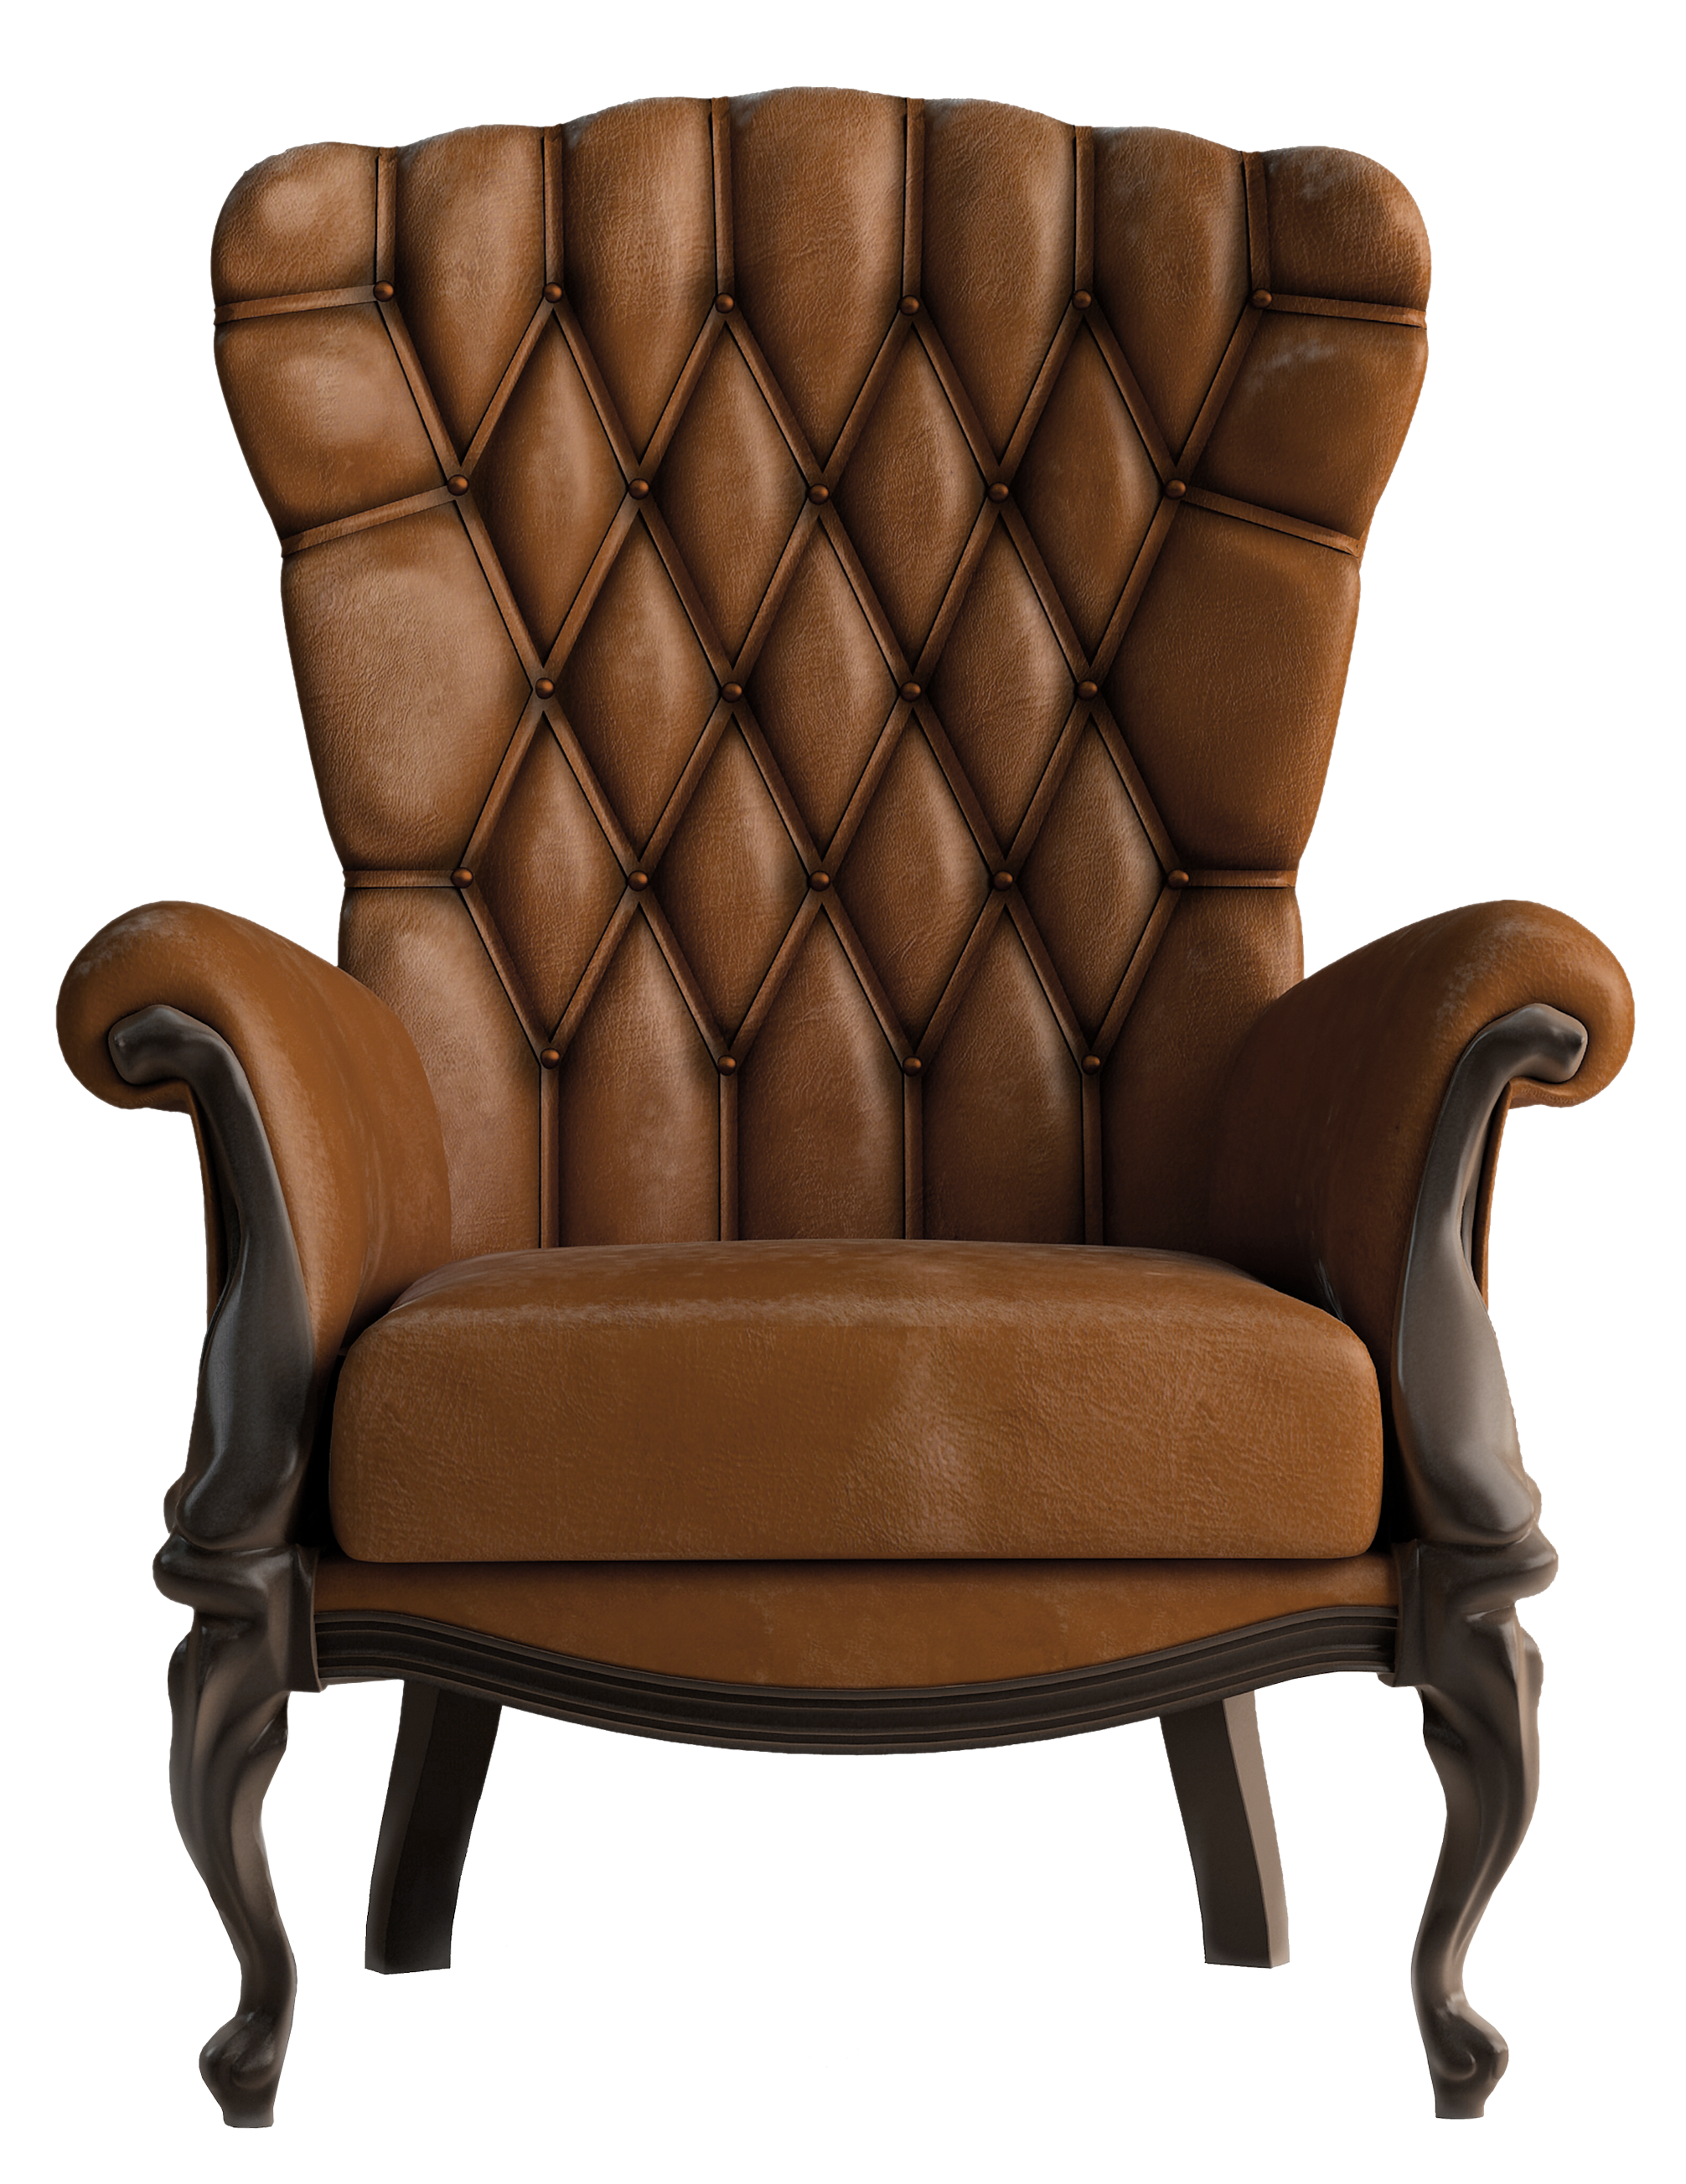 Download Chair High Quality Png Hq Png Image Freepngimg Download the chair, furniture png on freepngimg for free. chair high quality png hq png image